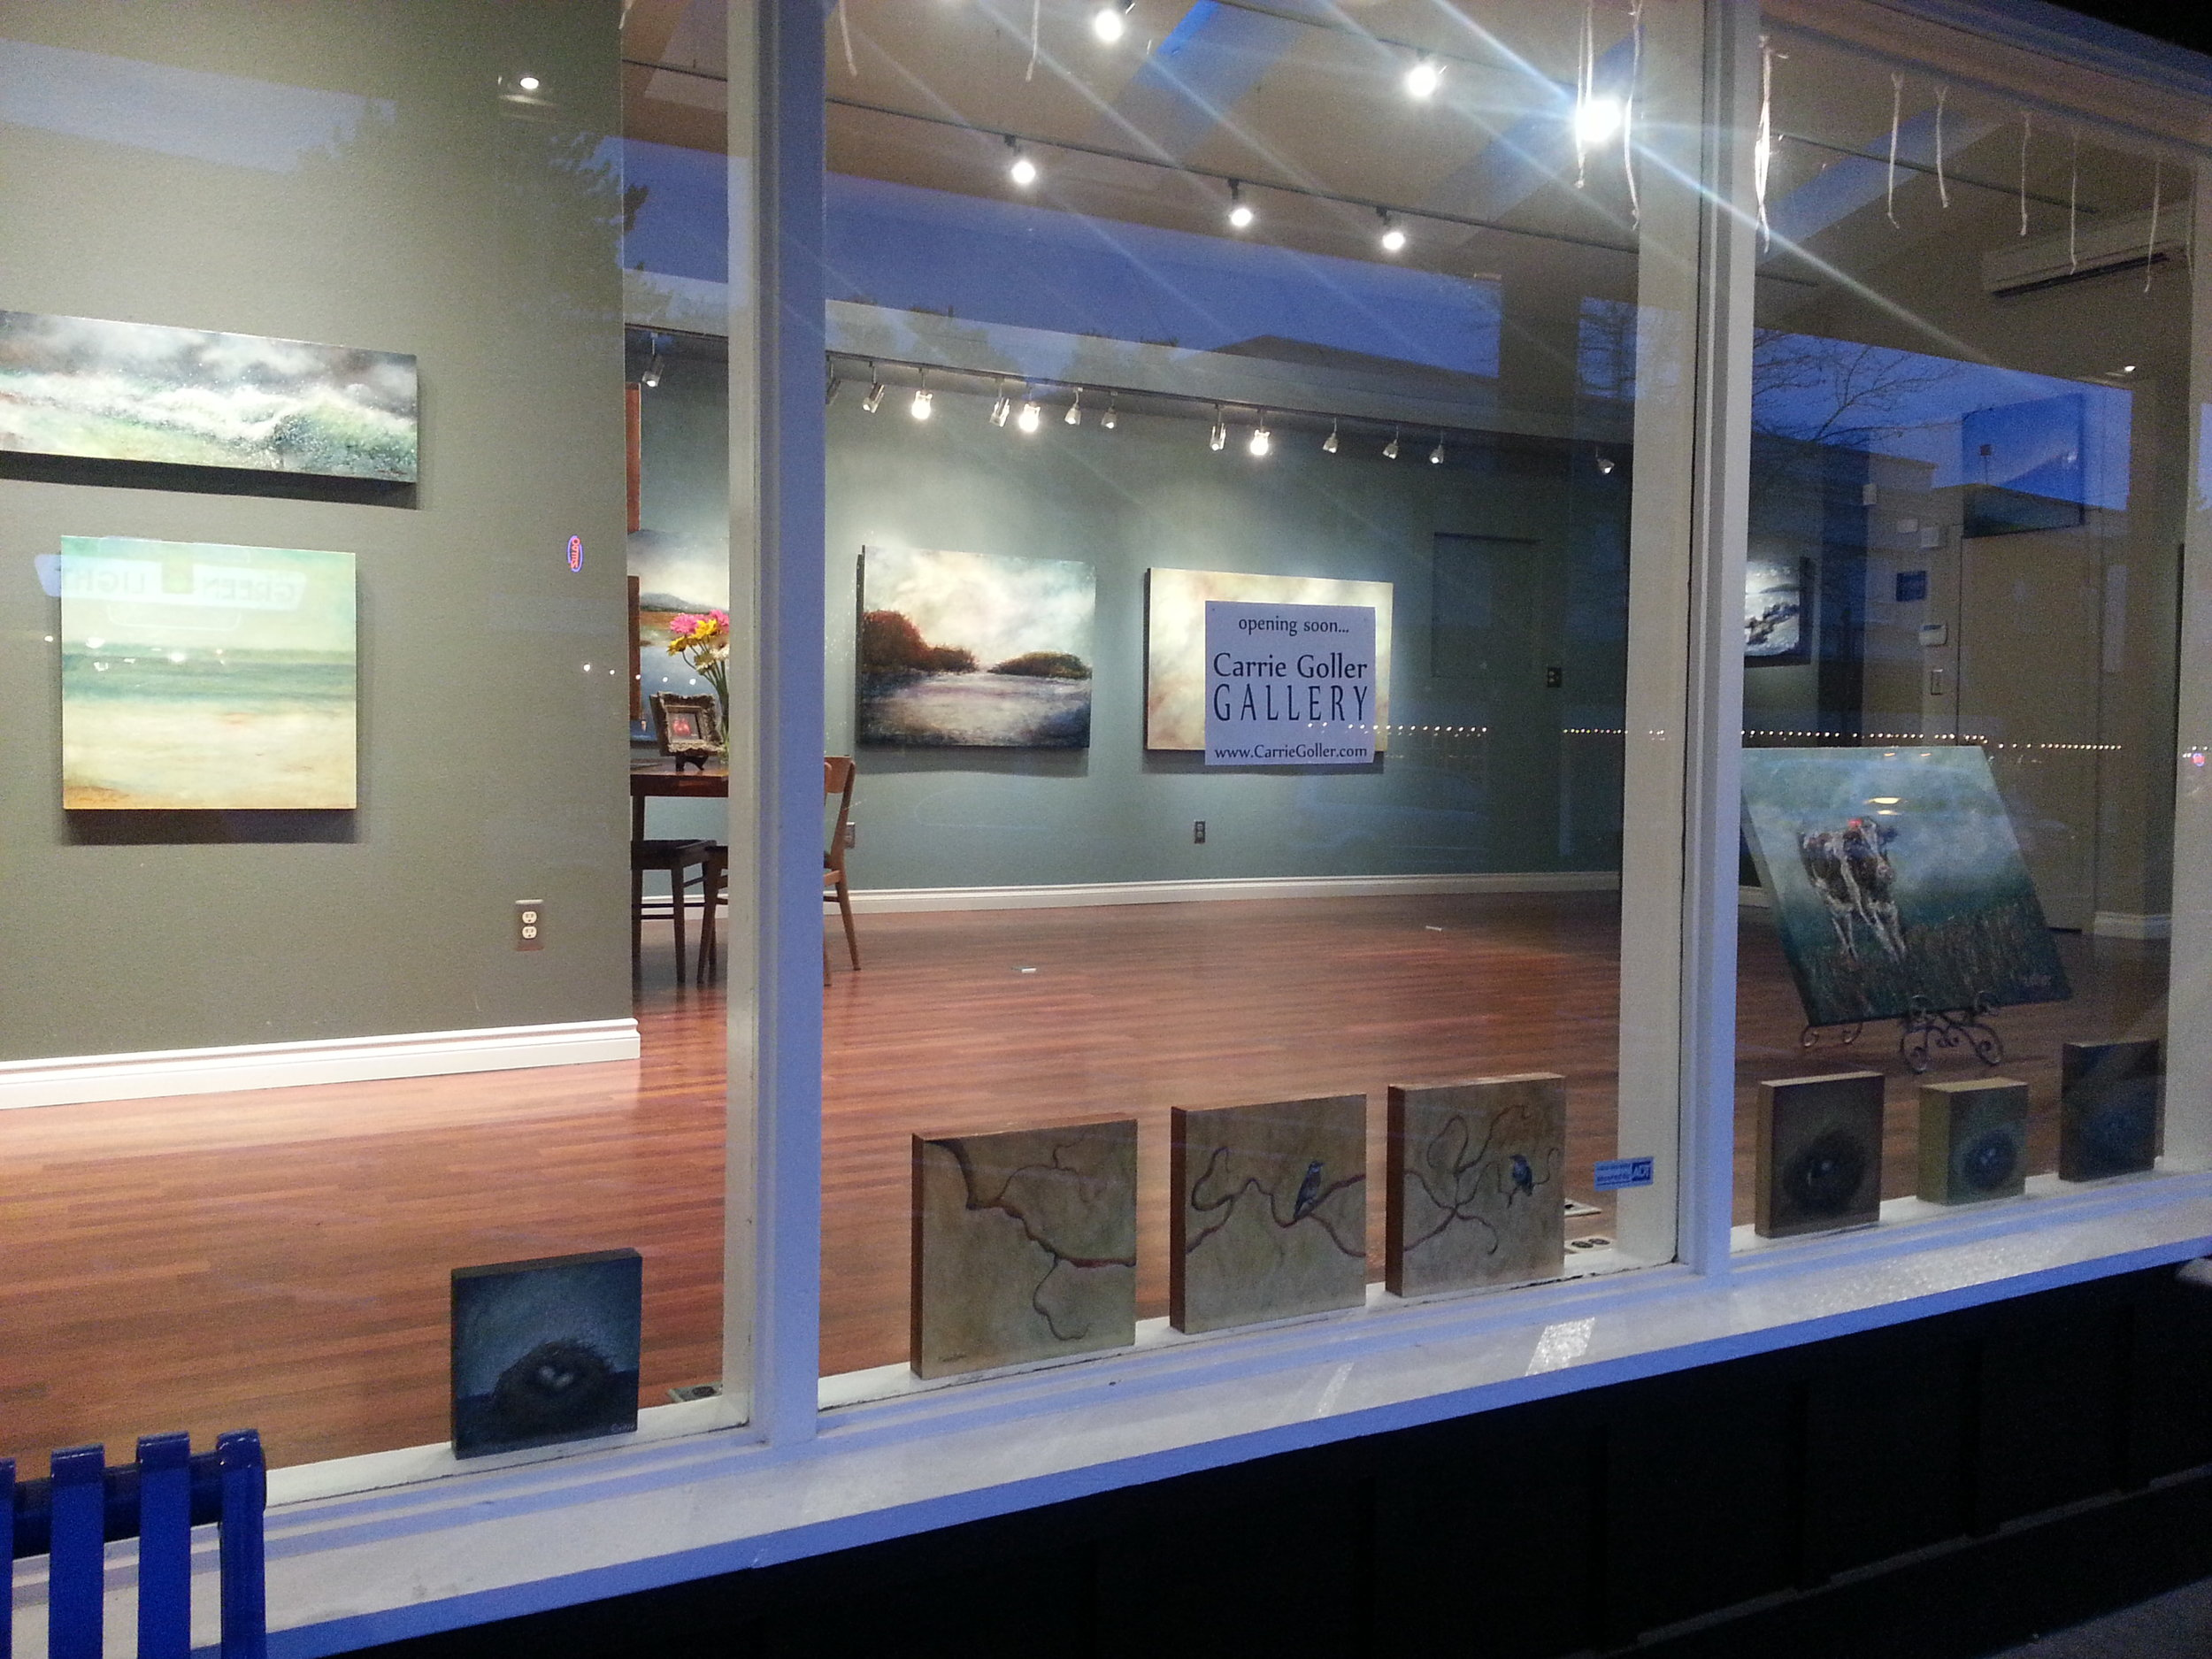 Carrie Goller Gallery, Poulsbo